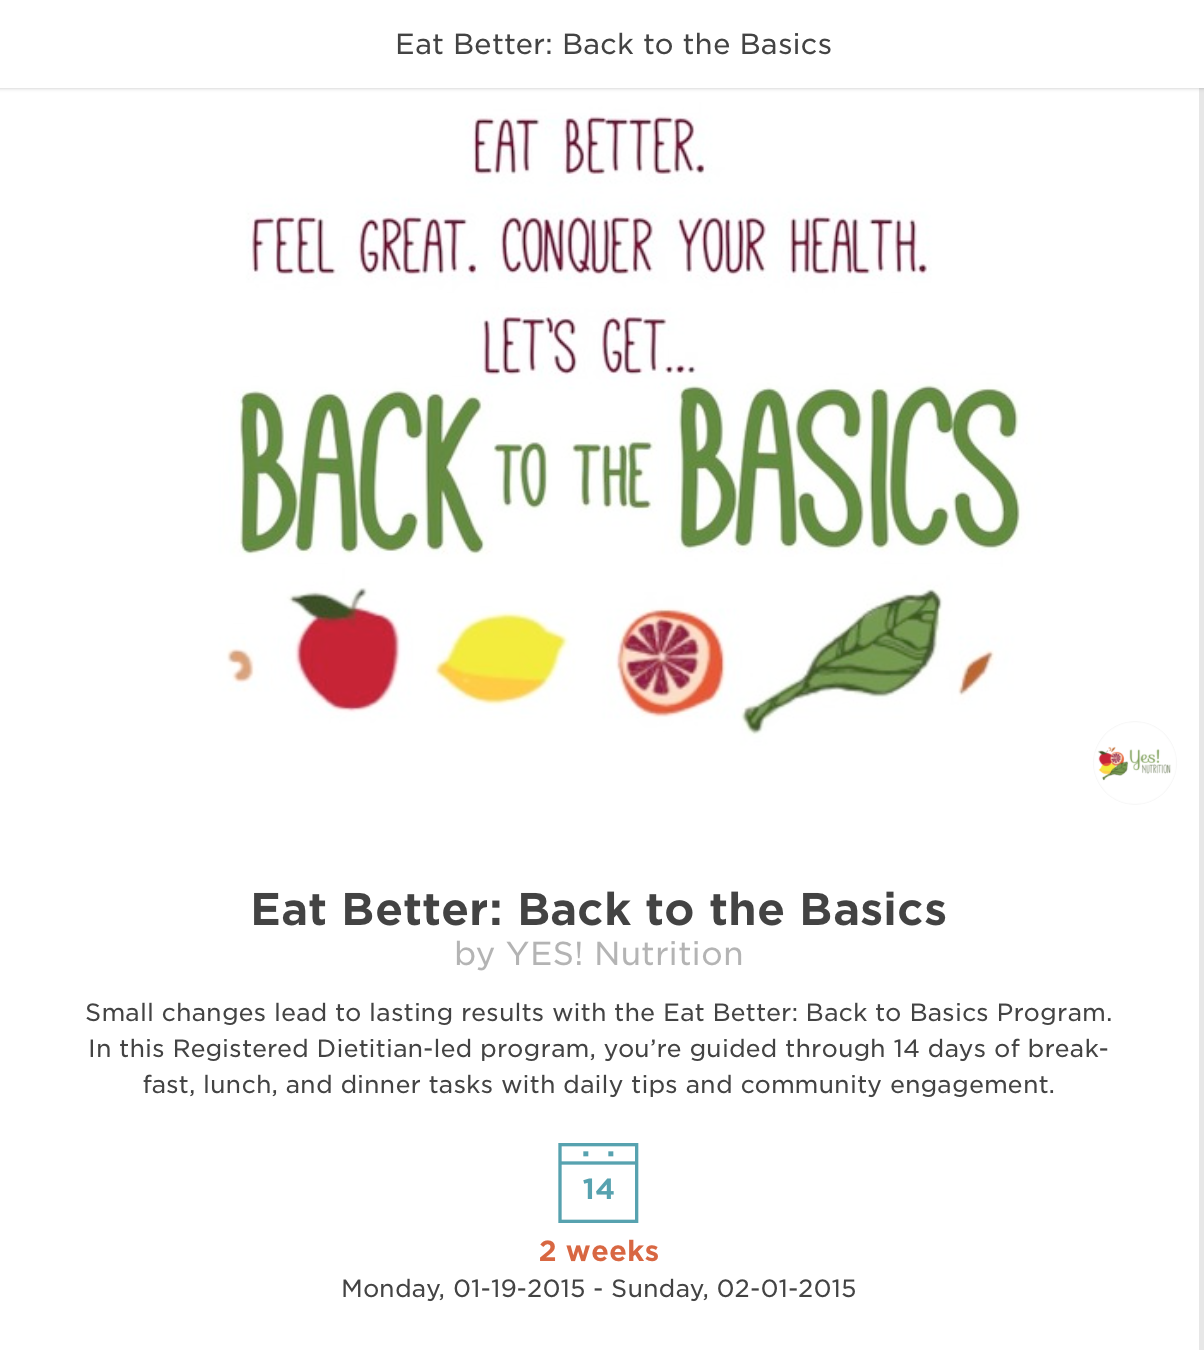 Eat Right! Get Back to the Basics with this 2-week nutrition coaching program from YES! Nutrition starting Monday January 19th on Vimify!